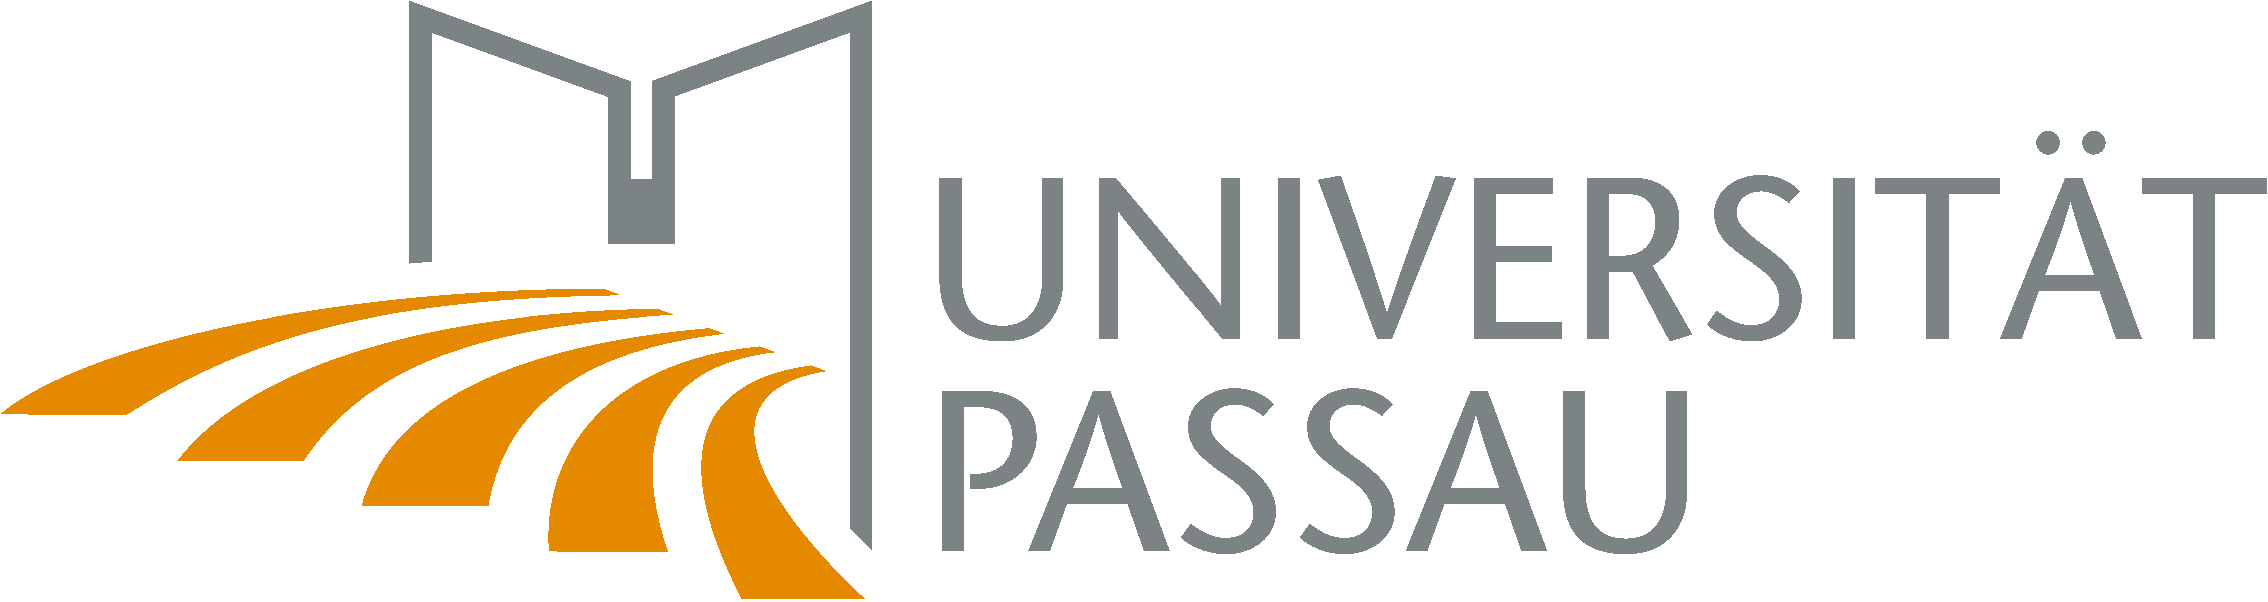 Image result for university of passau logo